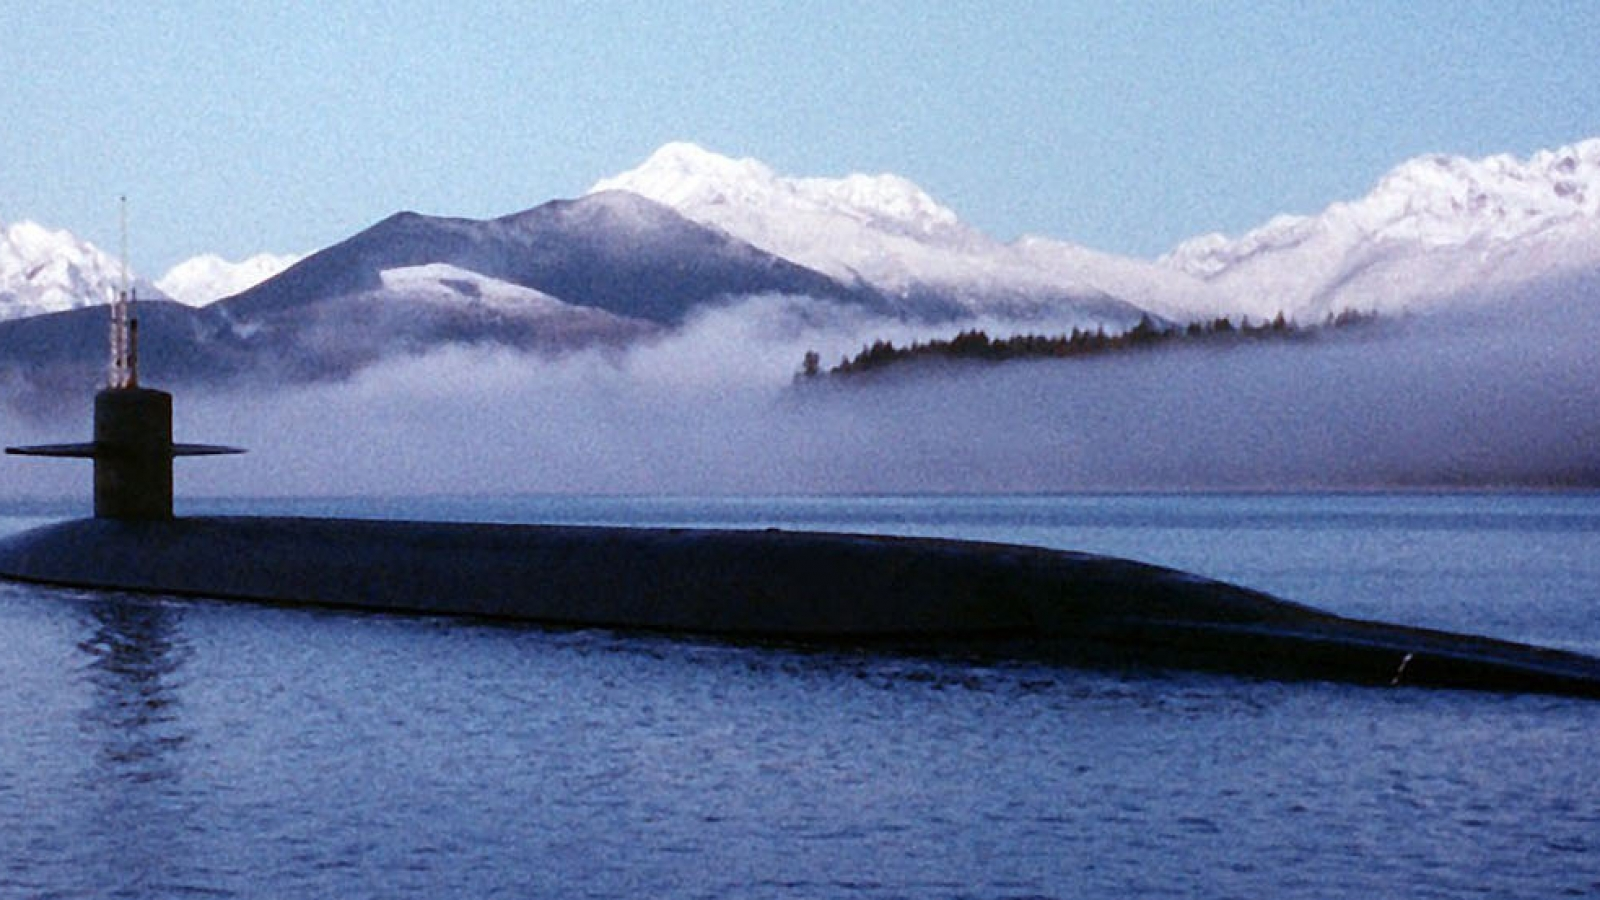 submarine-539984_1920_header